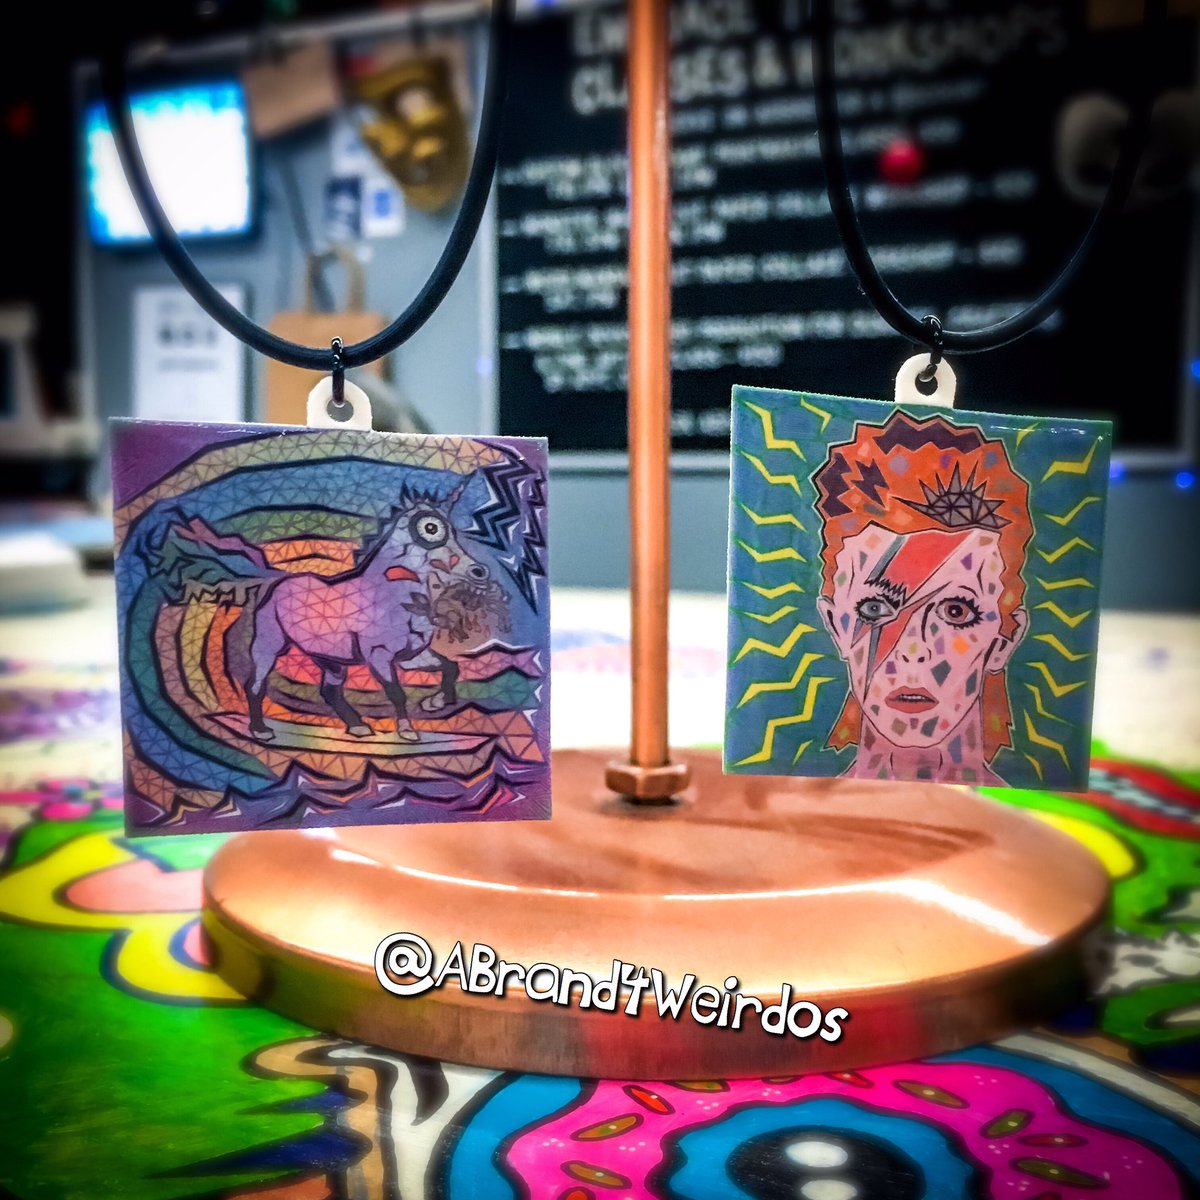 """Both original artwork #pendants by @brianabernhard, """"Feast of the Surfing Unicorn"""" & """"A Lad Insane"""" are brand new, #handmade and available only in our #SanPedro boutique inside @craftedportla this weekend!    #necklaces #unusualart #art #southbay #sanpedro #longbeach #giftideas"""